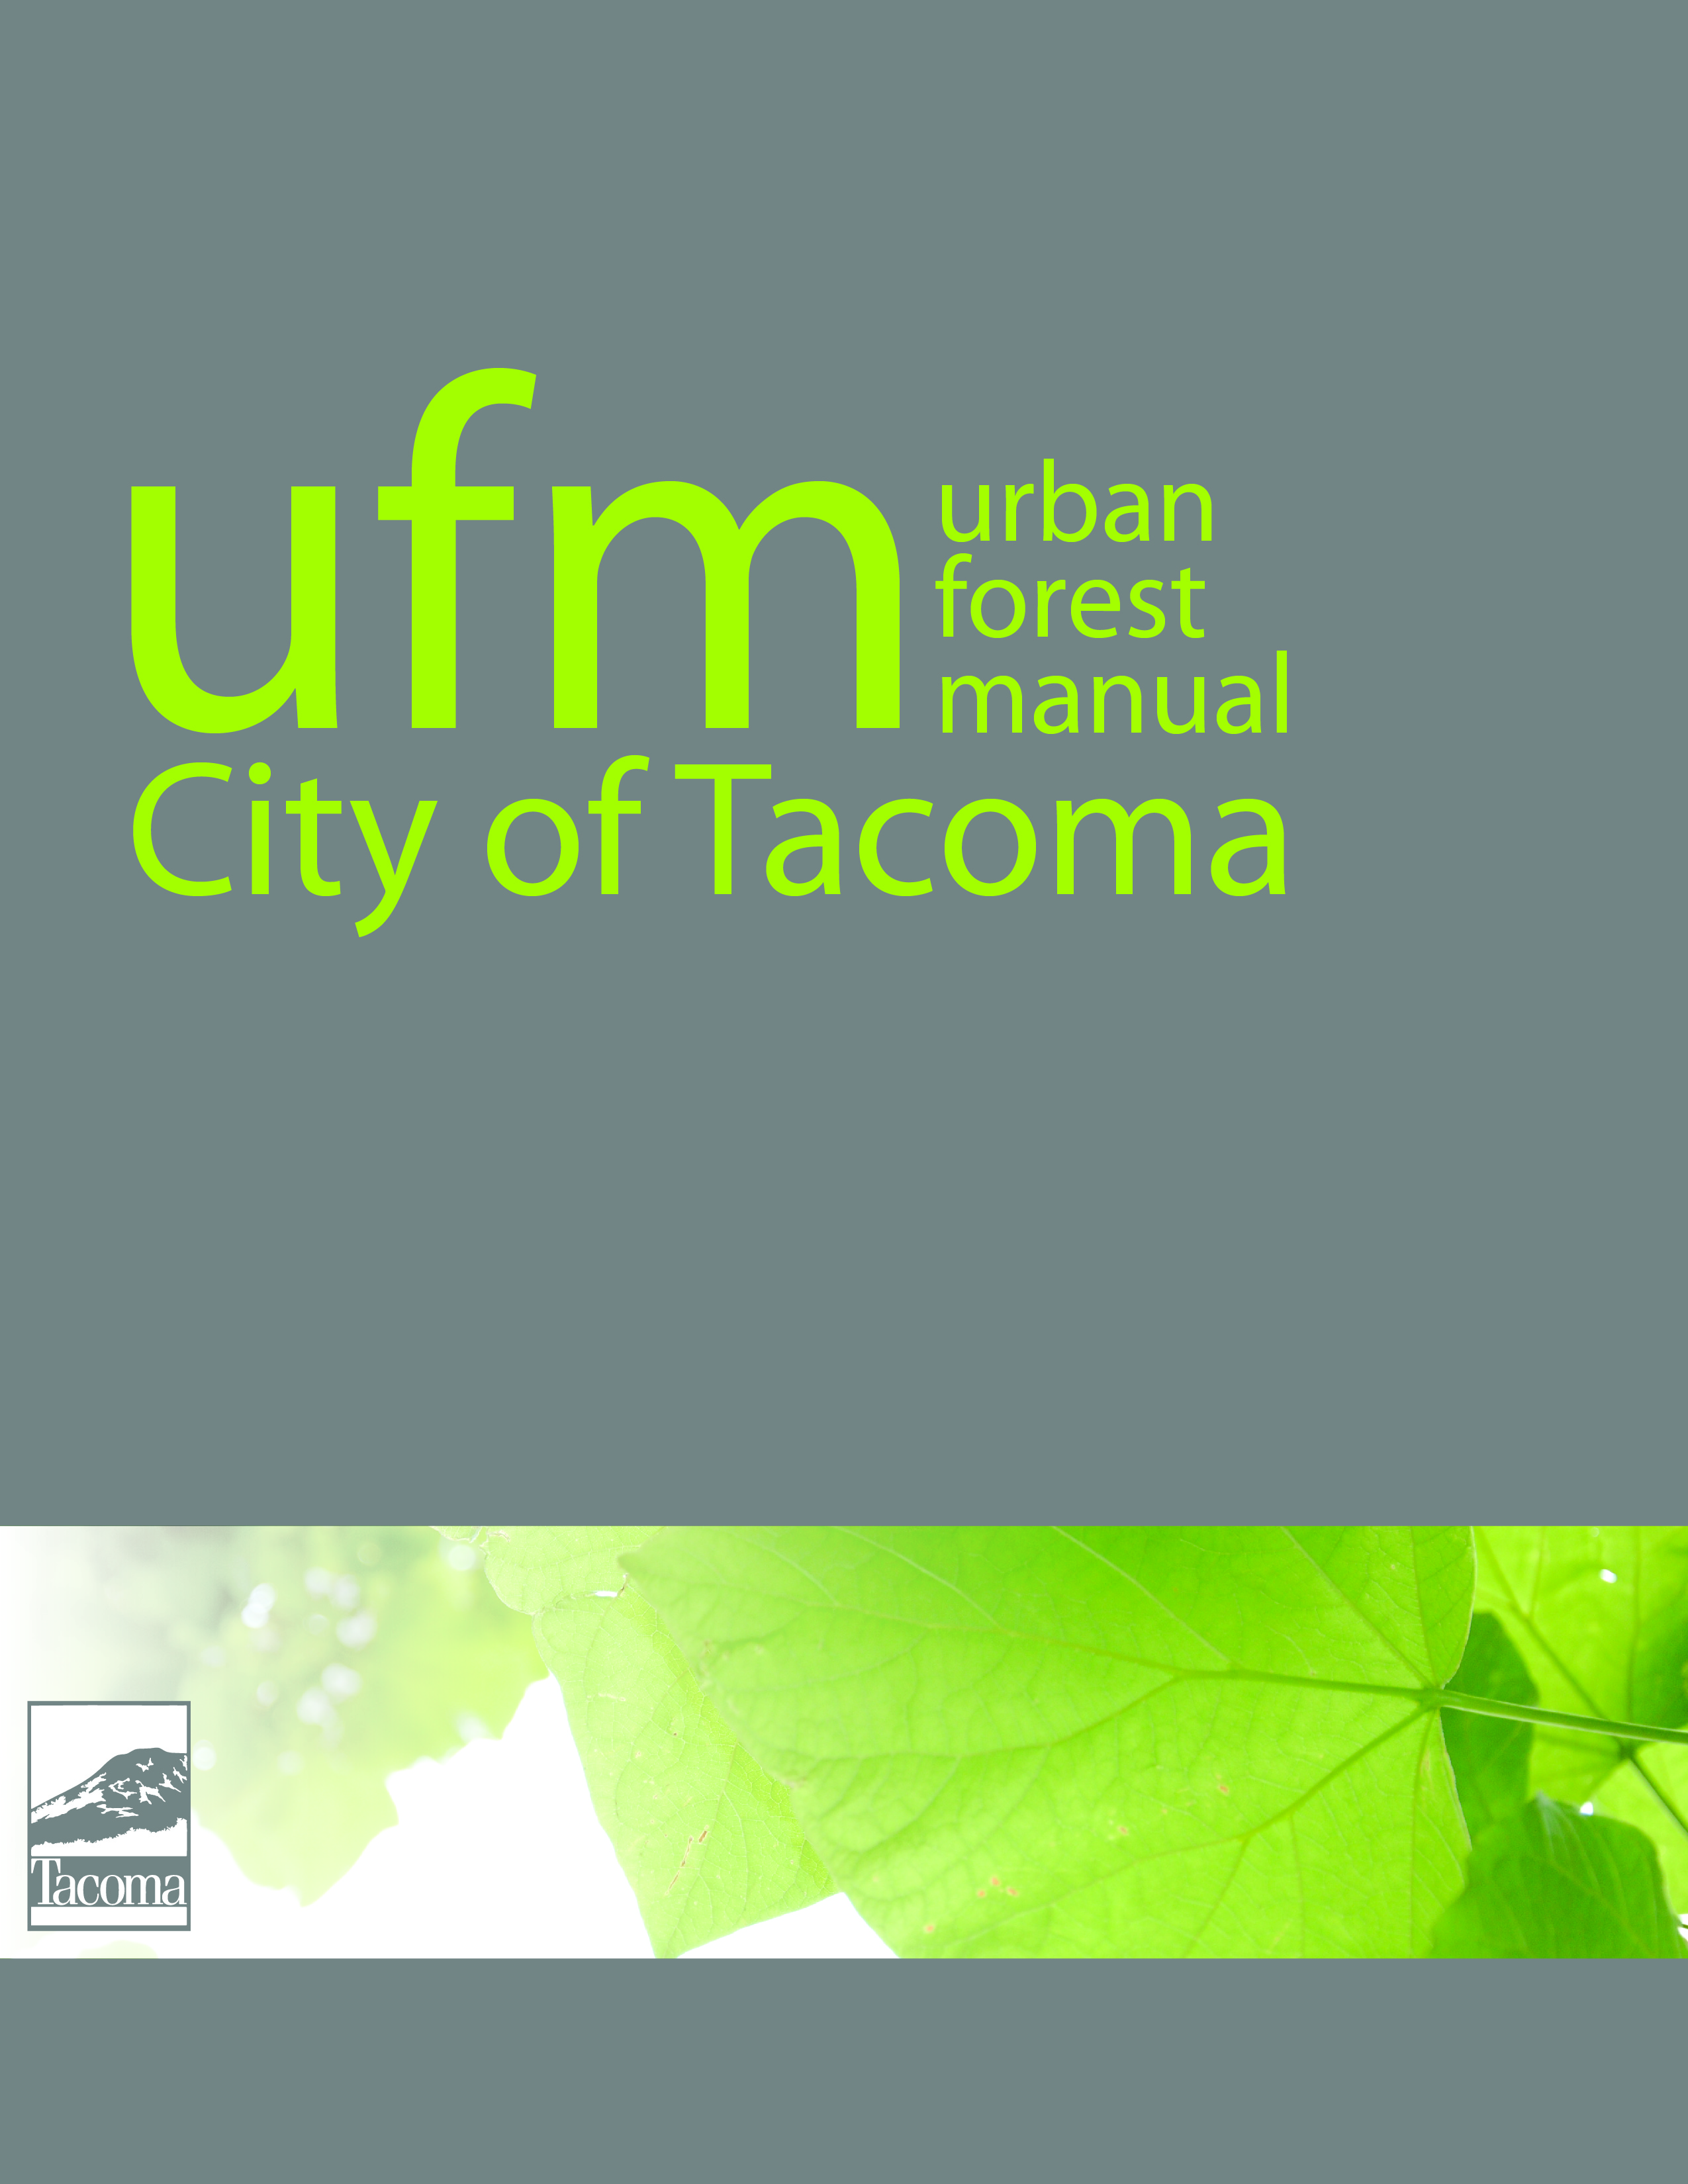 Image of Urban Forest Manual front cover